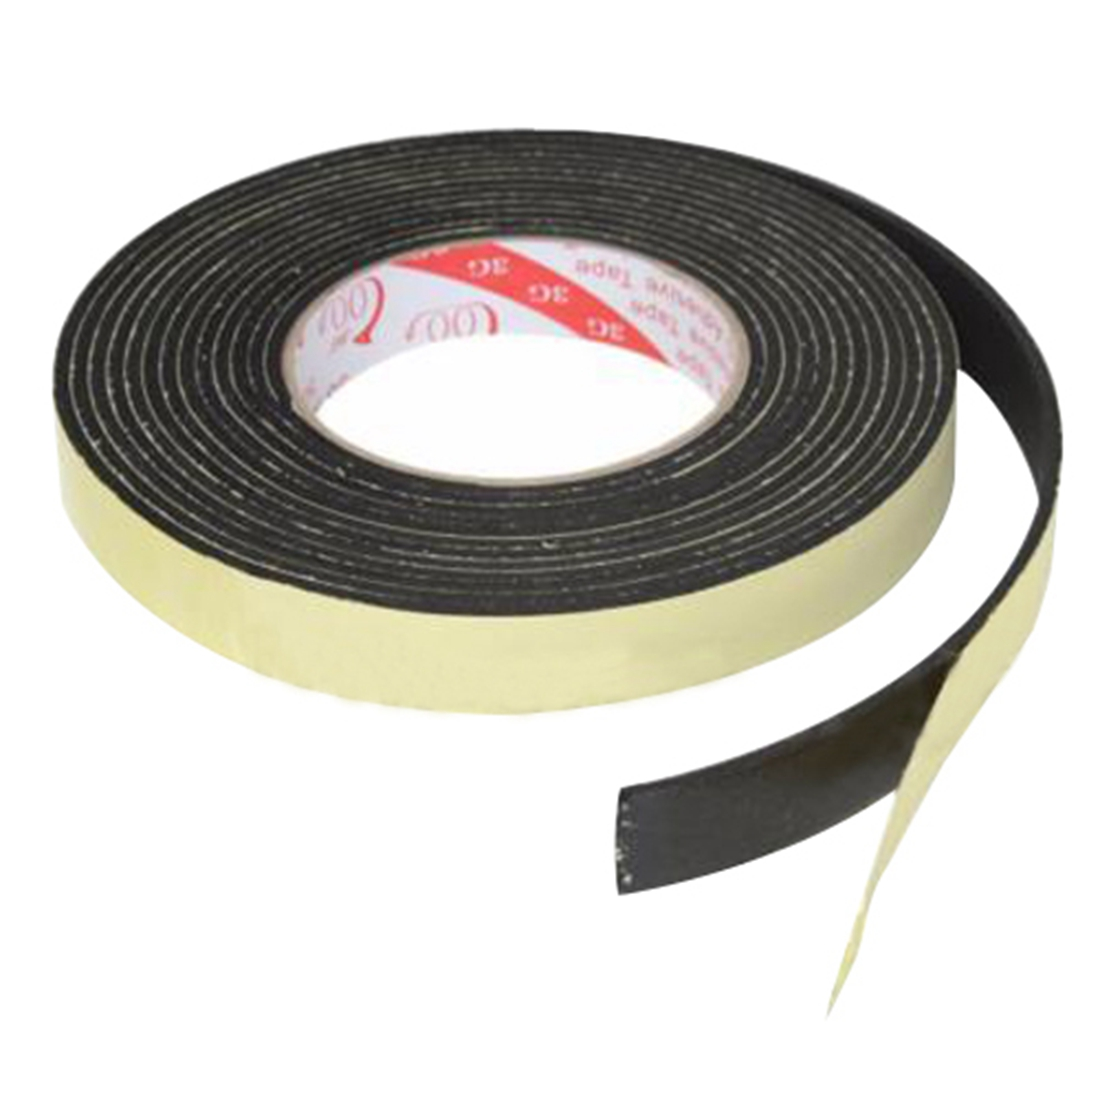 5m Black Single Sided Self Adhesive Foam Tape Closed Cell 20mm Wide x 3mm Thick christian louboutin оранжевые туфли из замши iriza 100